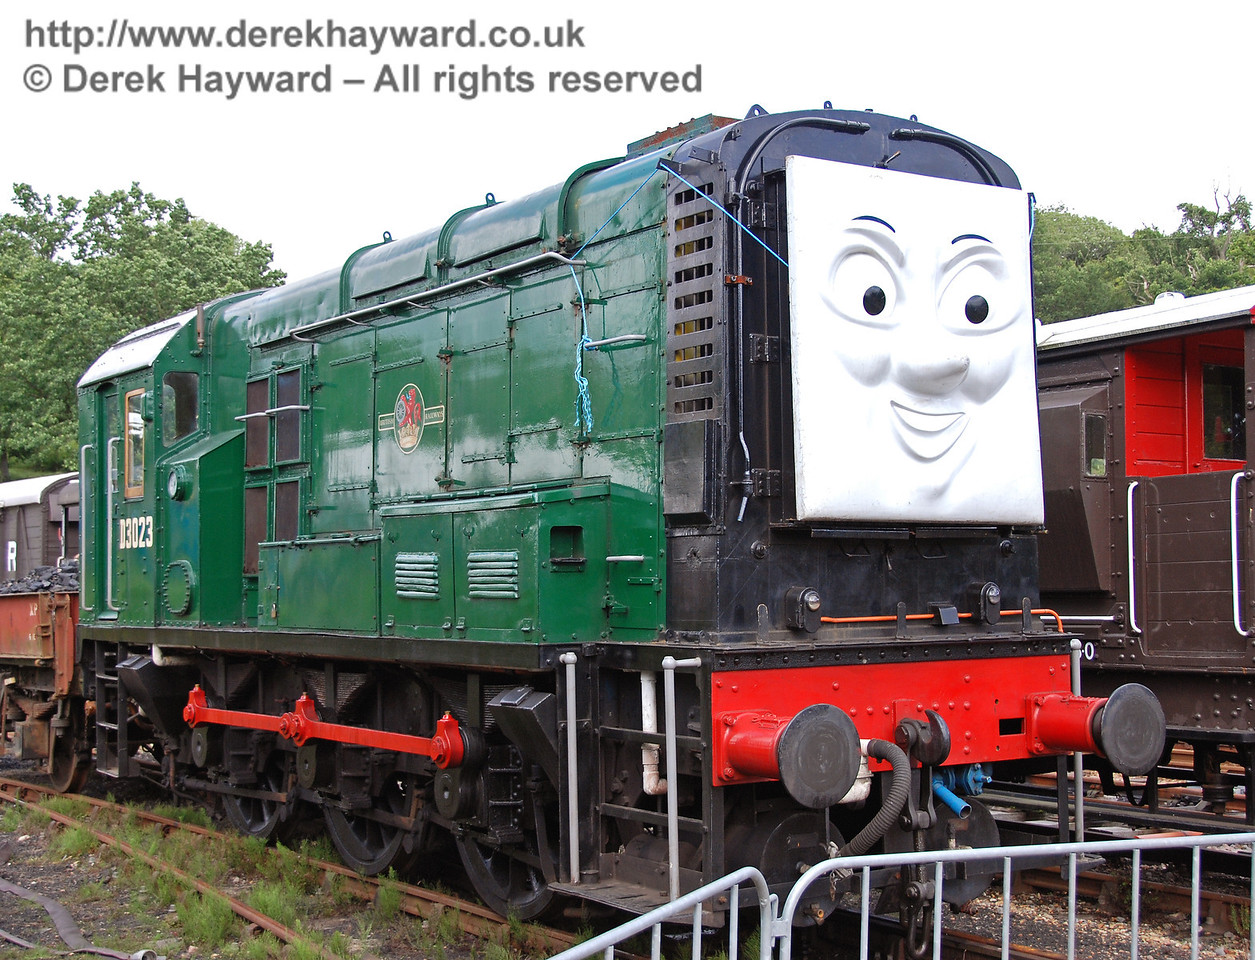 Diesel was at Horsted Keynes to meet his friends, but the steam engines made him stay in the siding. 01.07.2007